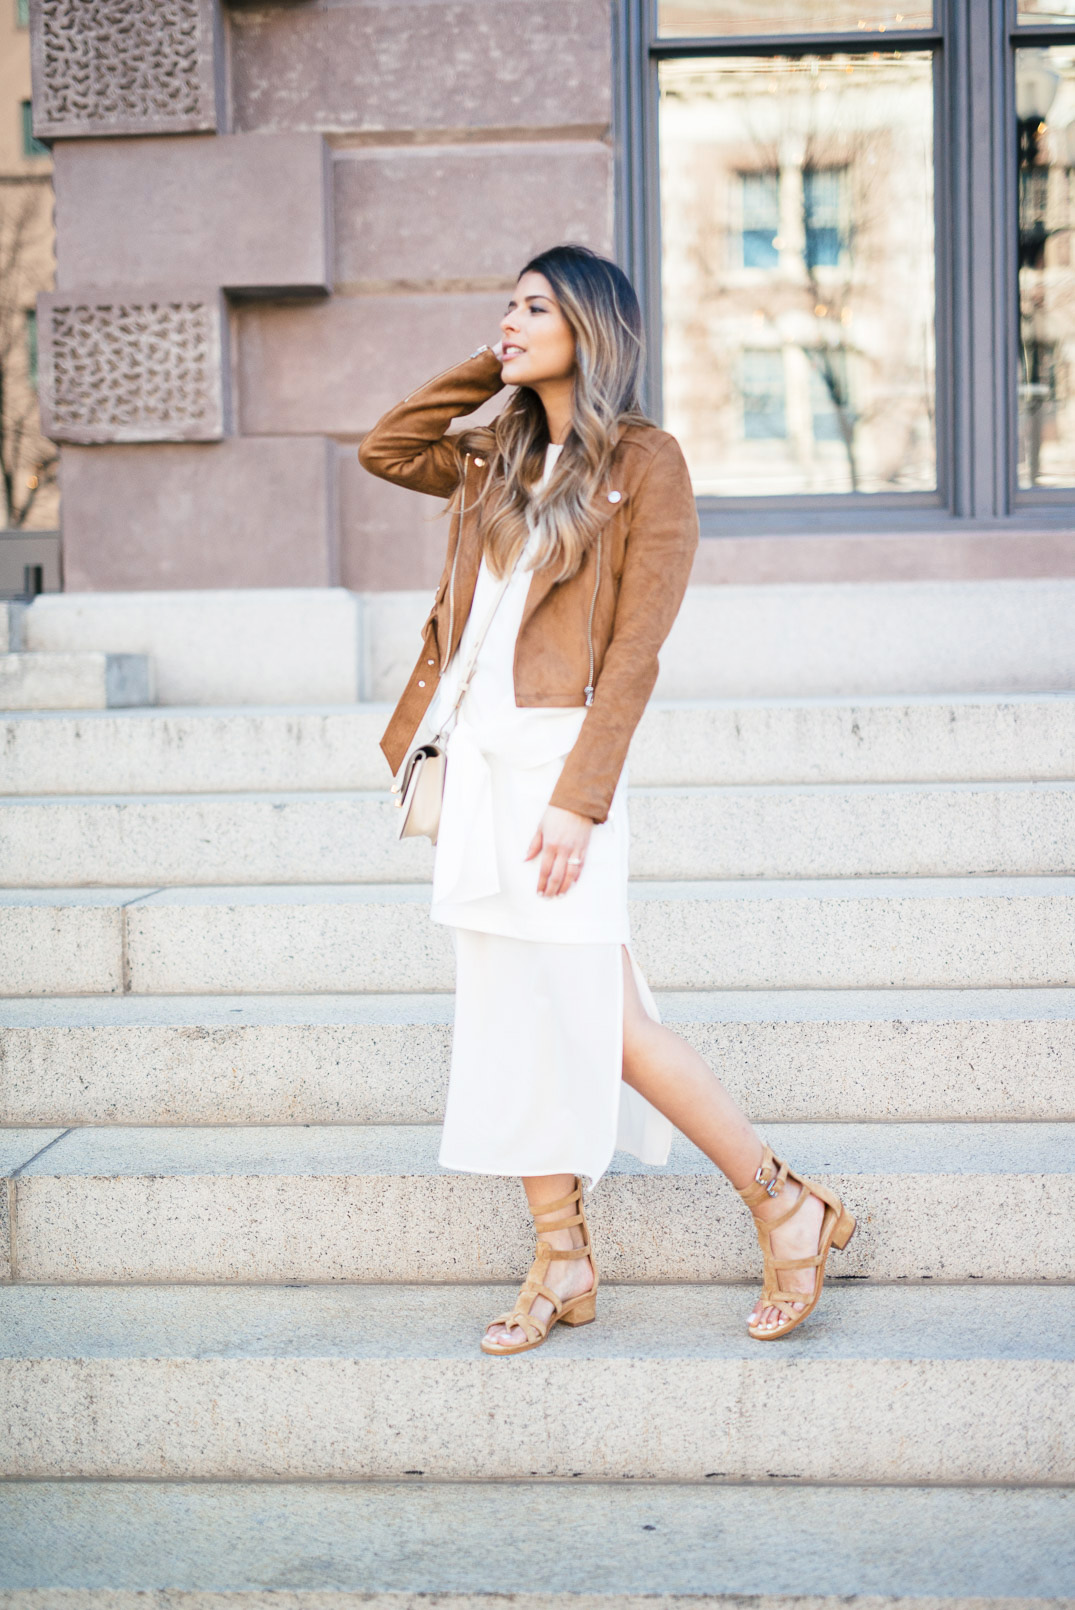 Gladiator sandals will always look good worn with a maxi dress; especially in white! This dress brings out the true rustic style of the sandals, and paired with a suede jacket looks ultra bohemian. Via Pam Hetlinger. Jacket: Aritzia, Sandals: Marc Fisher, Dress: Shopbop, Bag:Chloé.